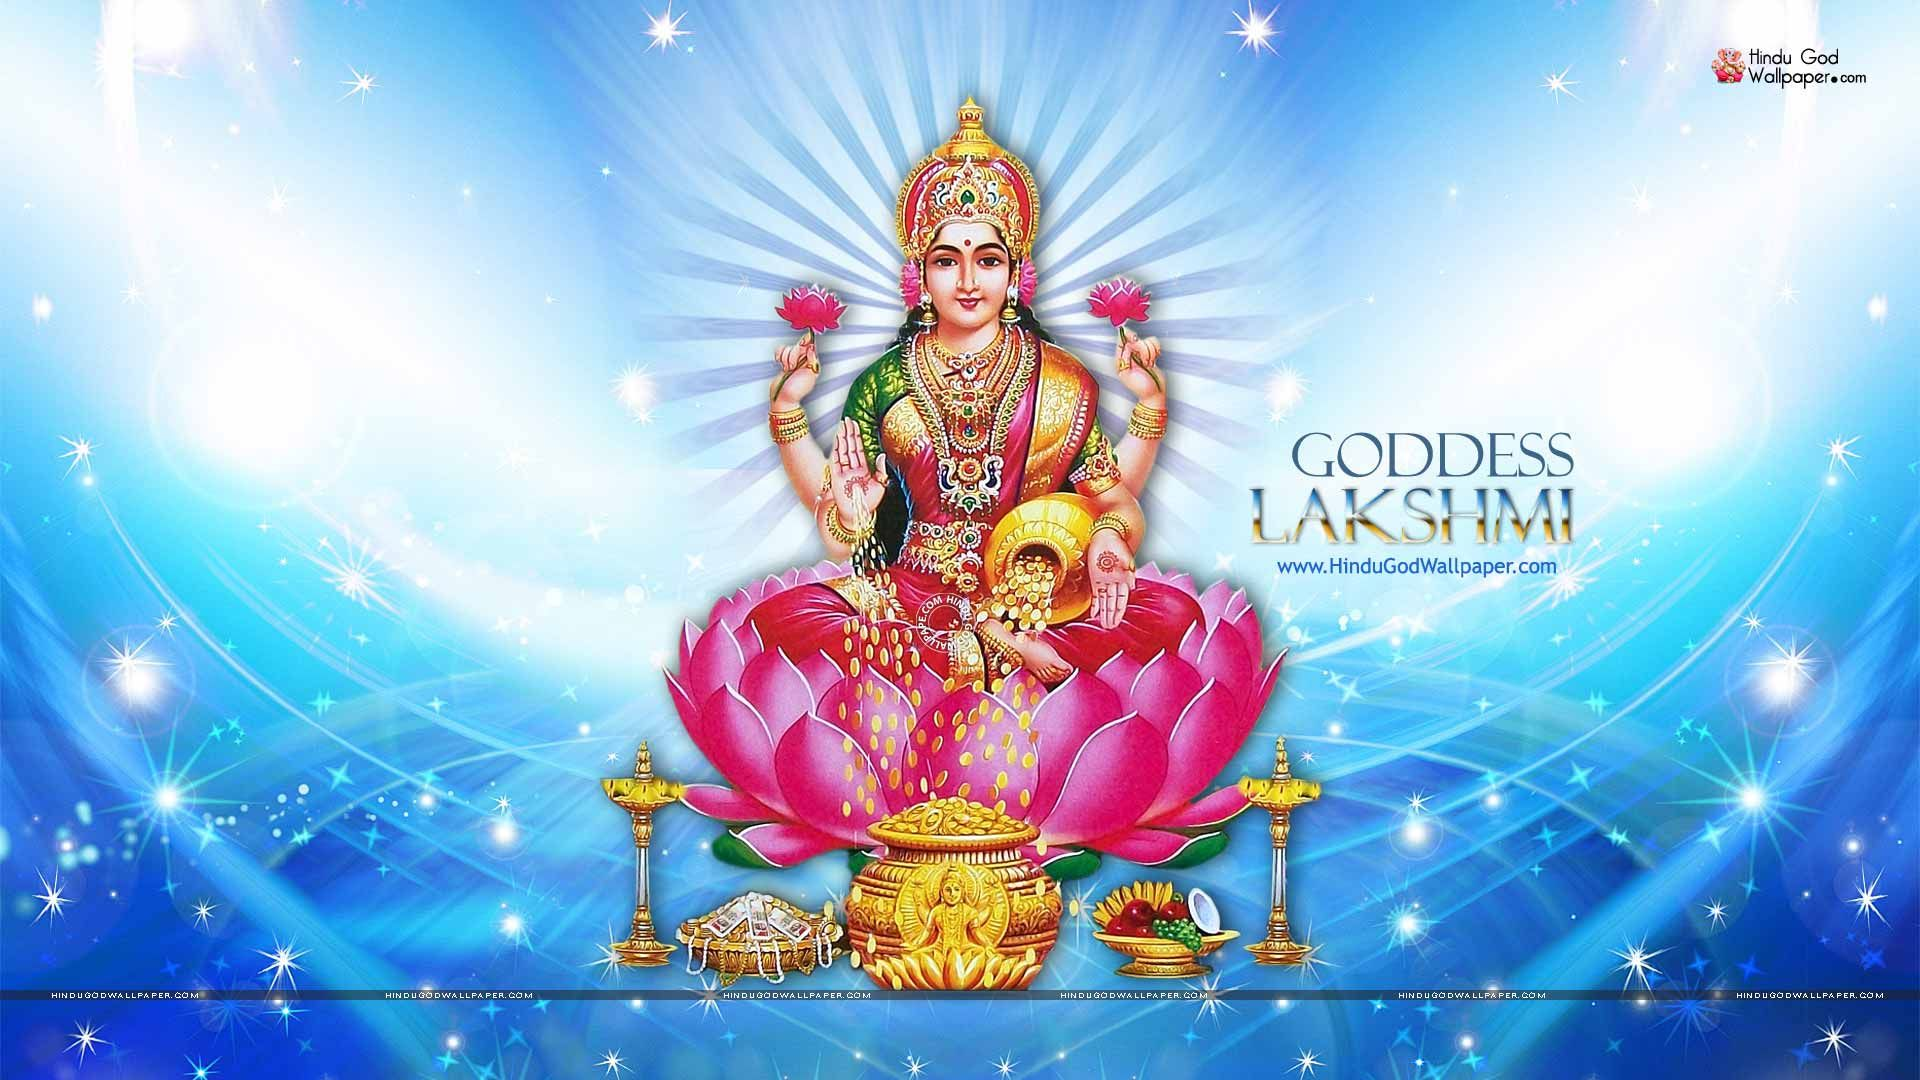 God Lakshmi Images Full Hd Wallpaper Hanuman Wallpaper Lord Hanuman Wallpapers 4k Wallpaper For Mobile